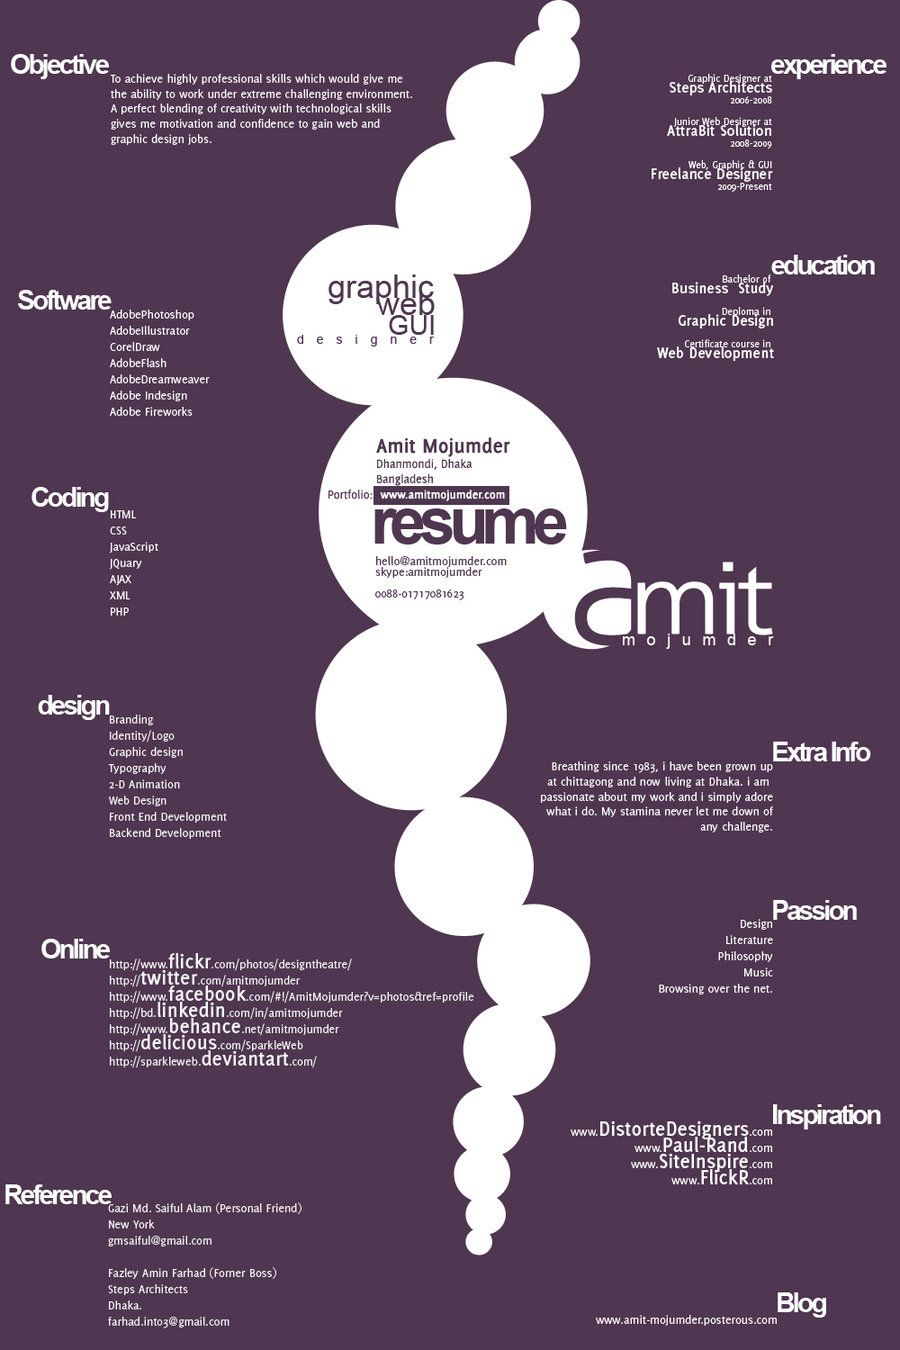 Resume Designs Graphic Design Resume Resume Design Creative